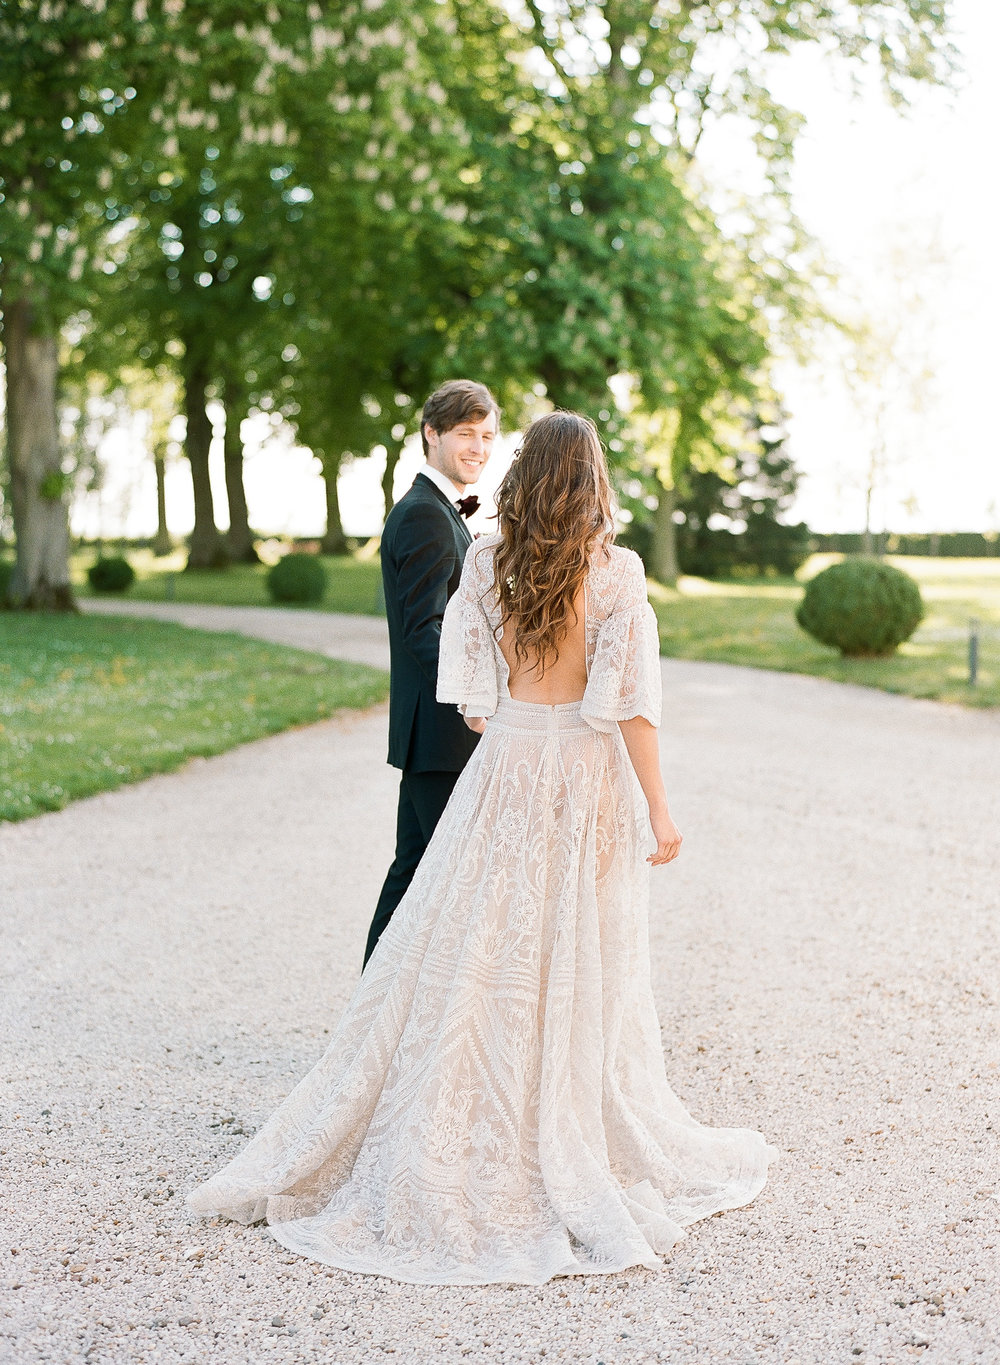 A sunset couple session at Chateau de Varennes in Burgundy, France; Sylvie Gil Photography